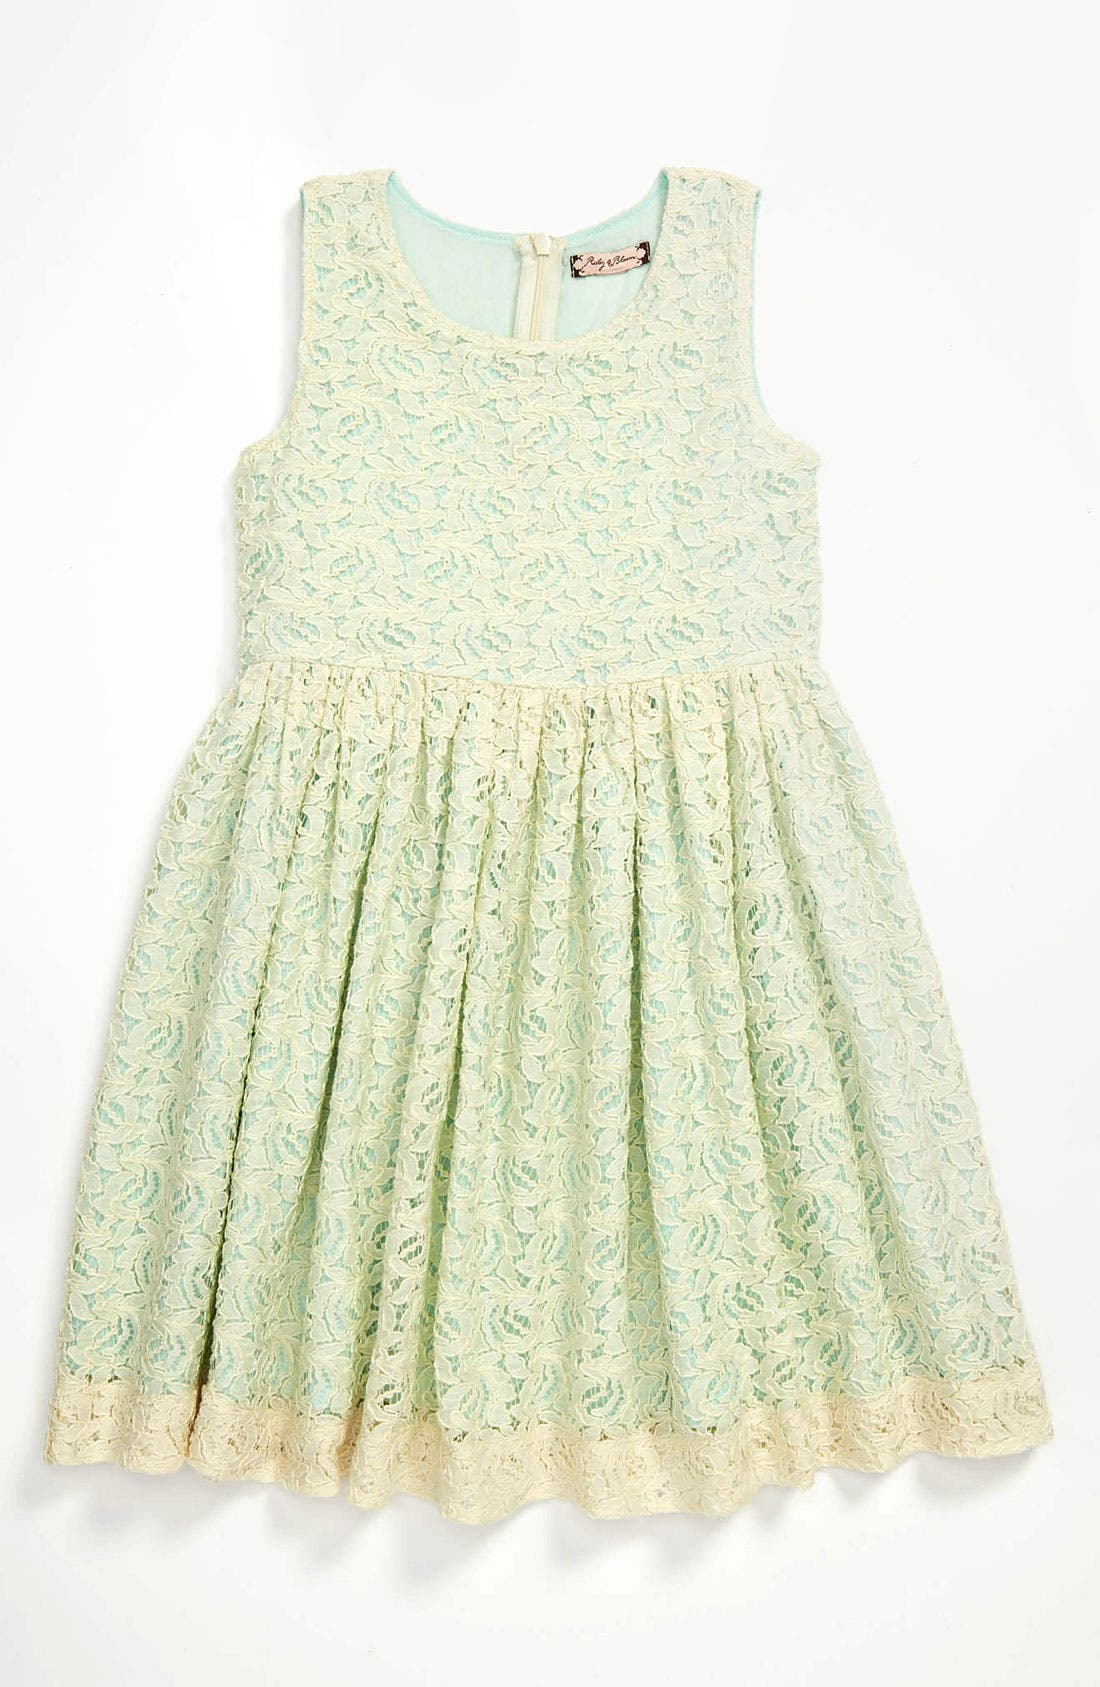 Alternate Image 1 Selected - Ruby & Bloom 'Valerie' Dress (Little Girls)